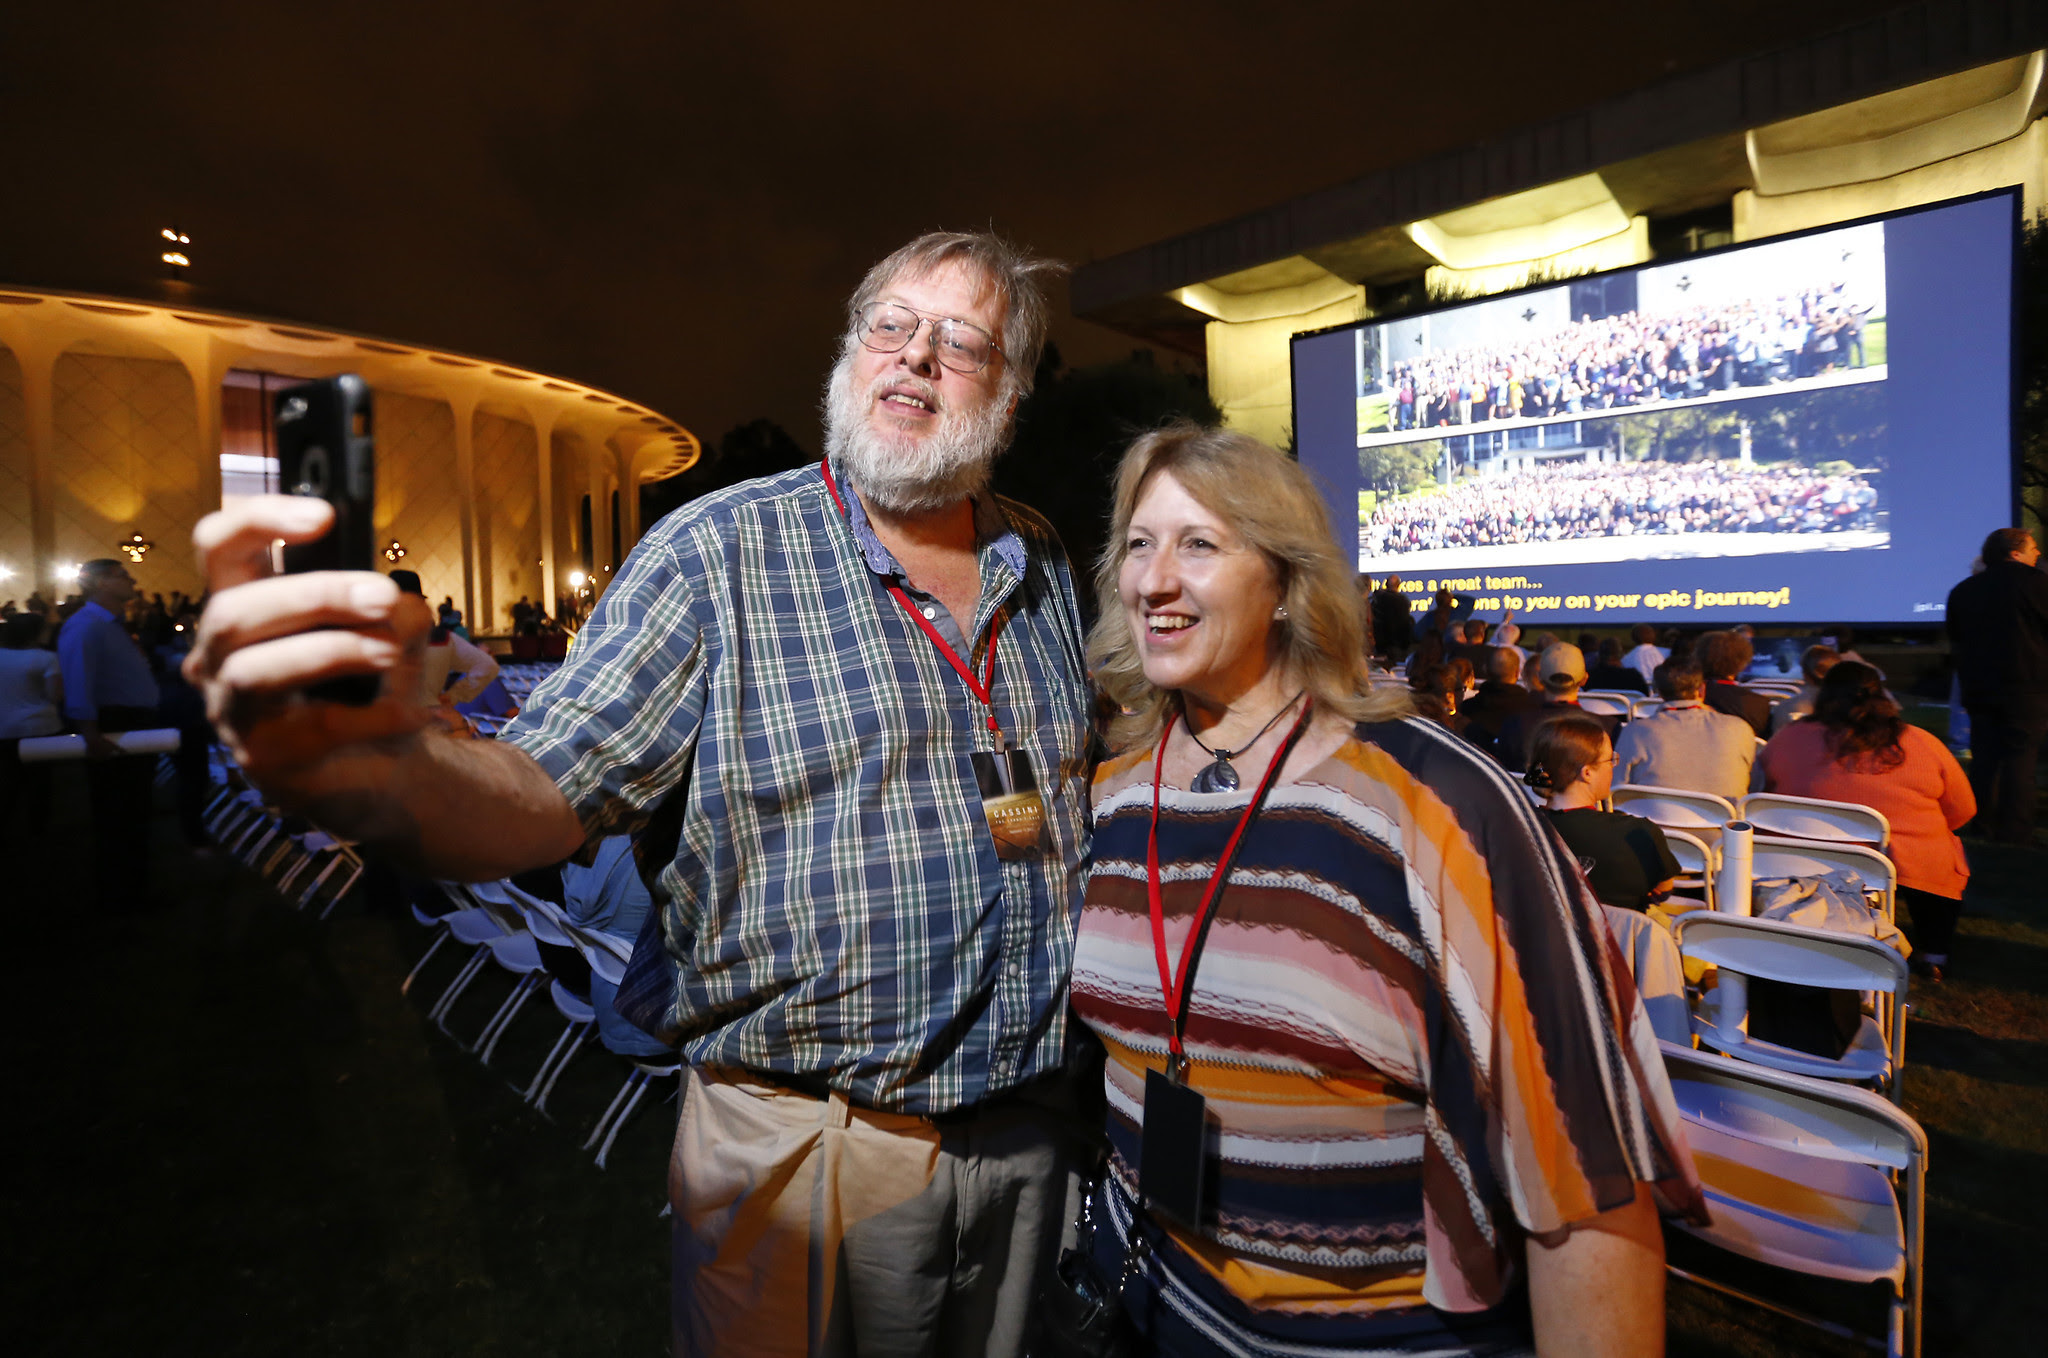 Ken Clark and his wife, Dotty, take a celebratory selfie at Caltech, where people involved in JPL's Cassini mission    celebrated.